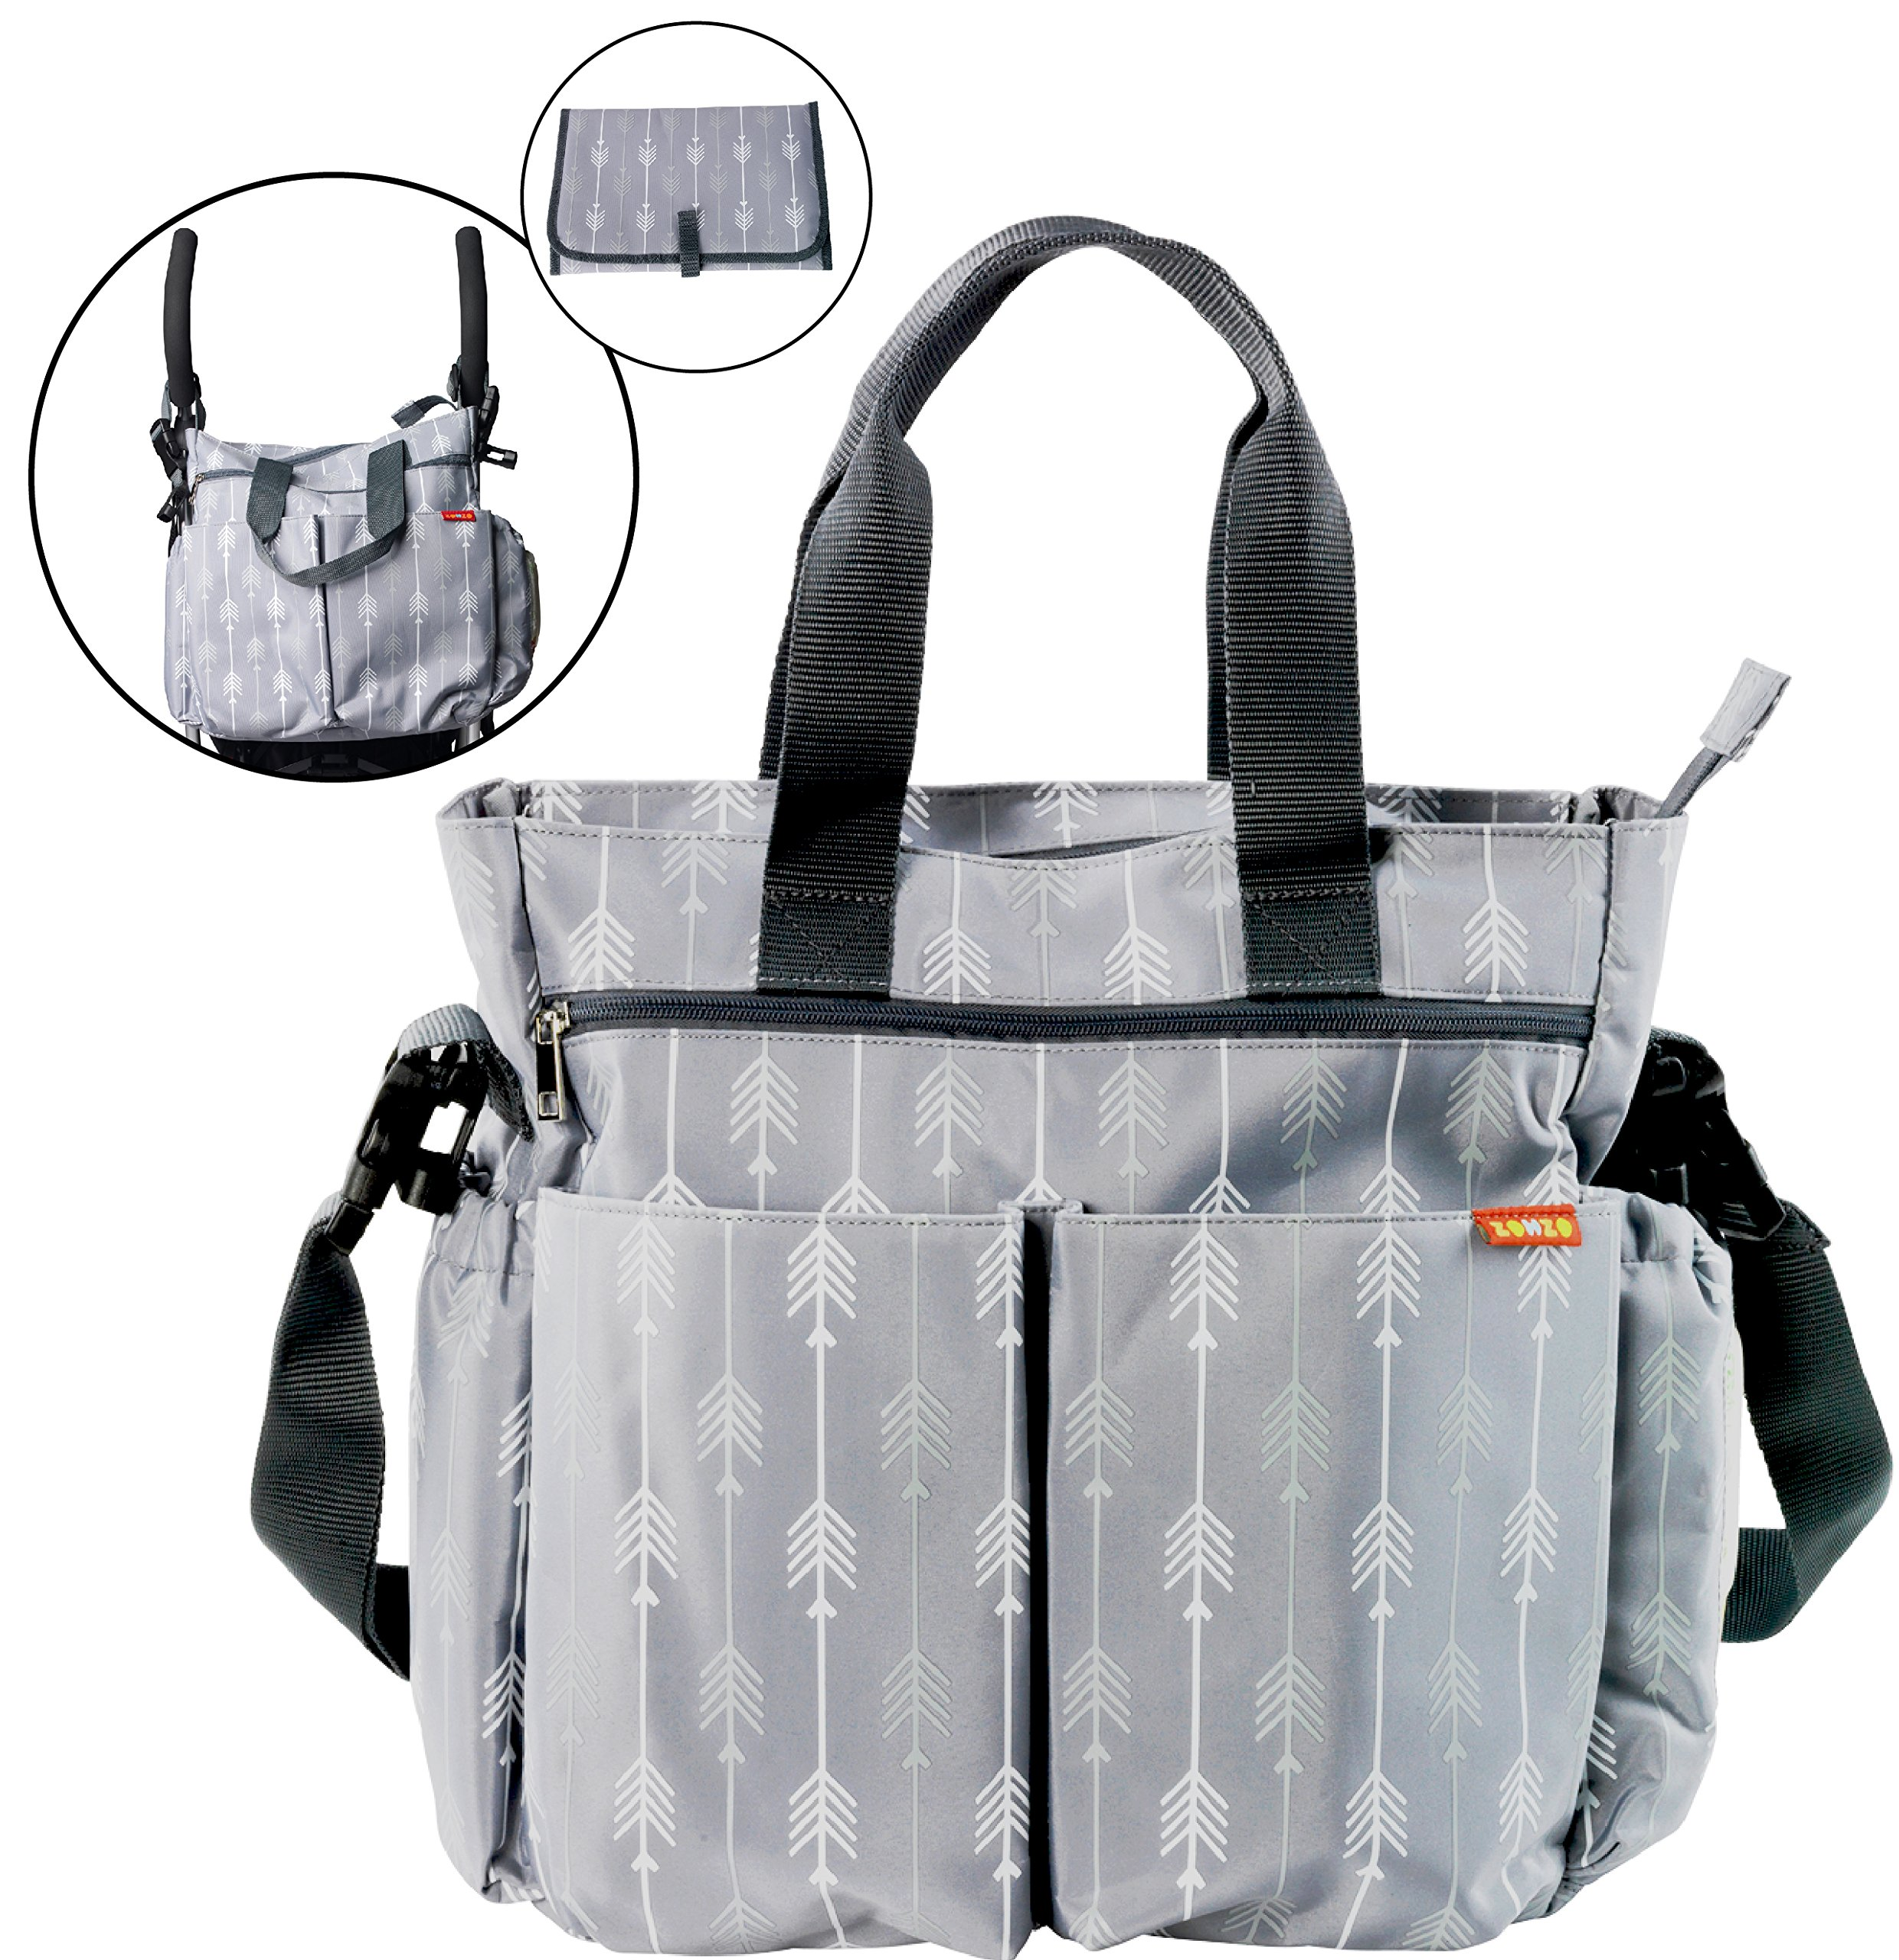 Diaper Bag for Baby by Zohzo - Diaper Tote Bag with Changing Pad, Insulated Pockets, Wipes Pocket, Waterproof Material, Stroller Straps, and Shoulder Strap by Zohzo